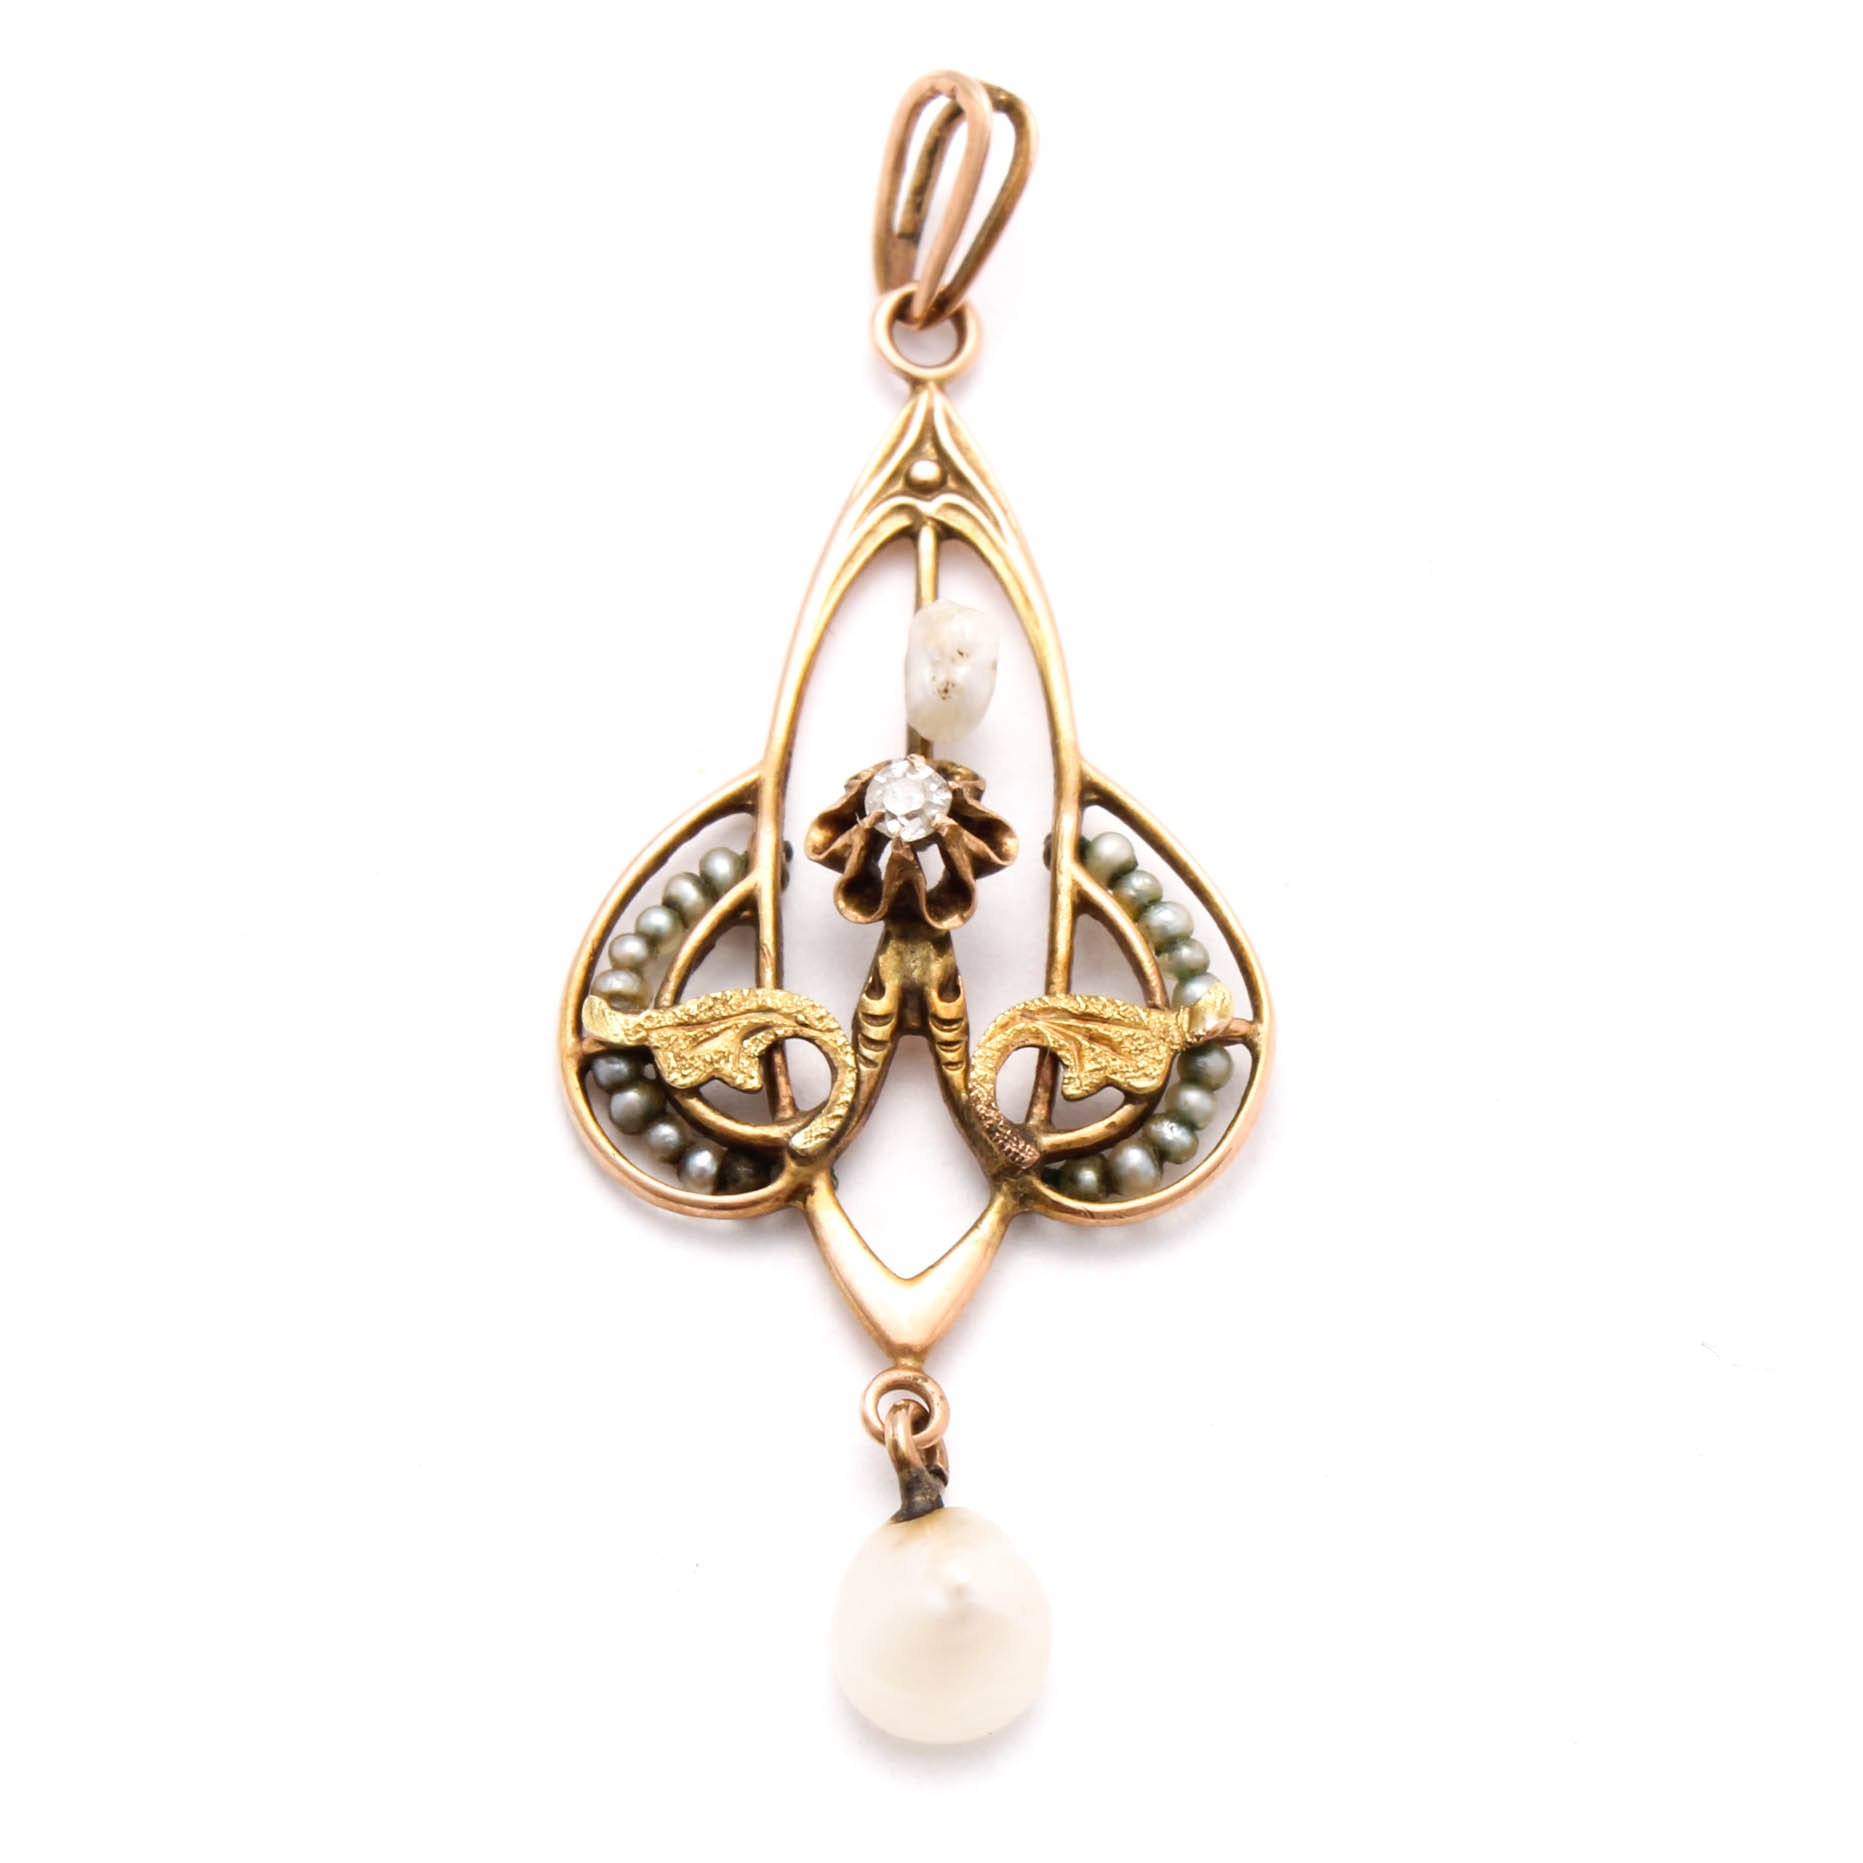 Vintage 10K Yellow Gold Seed Pearl and Diamond Pendant